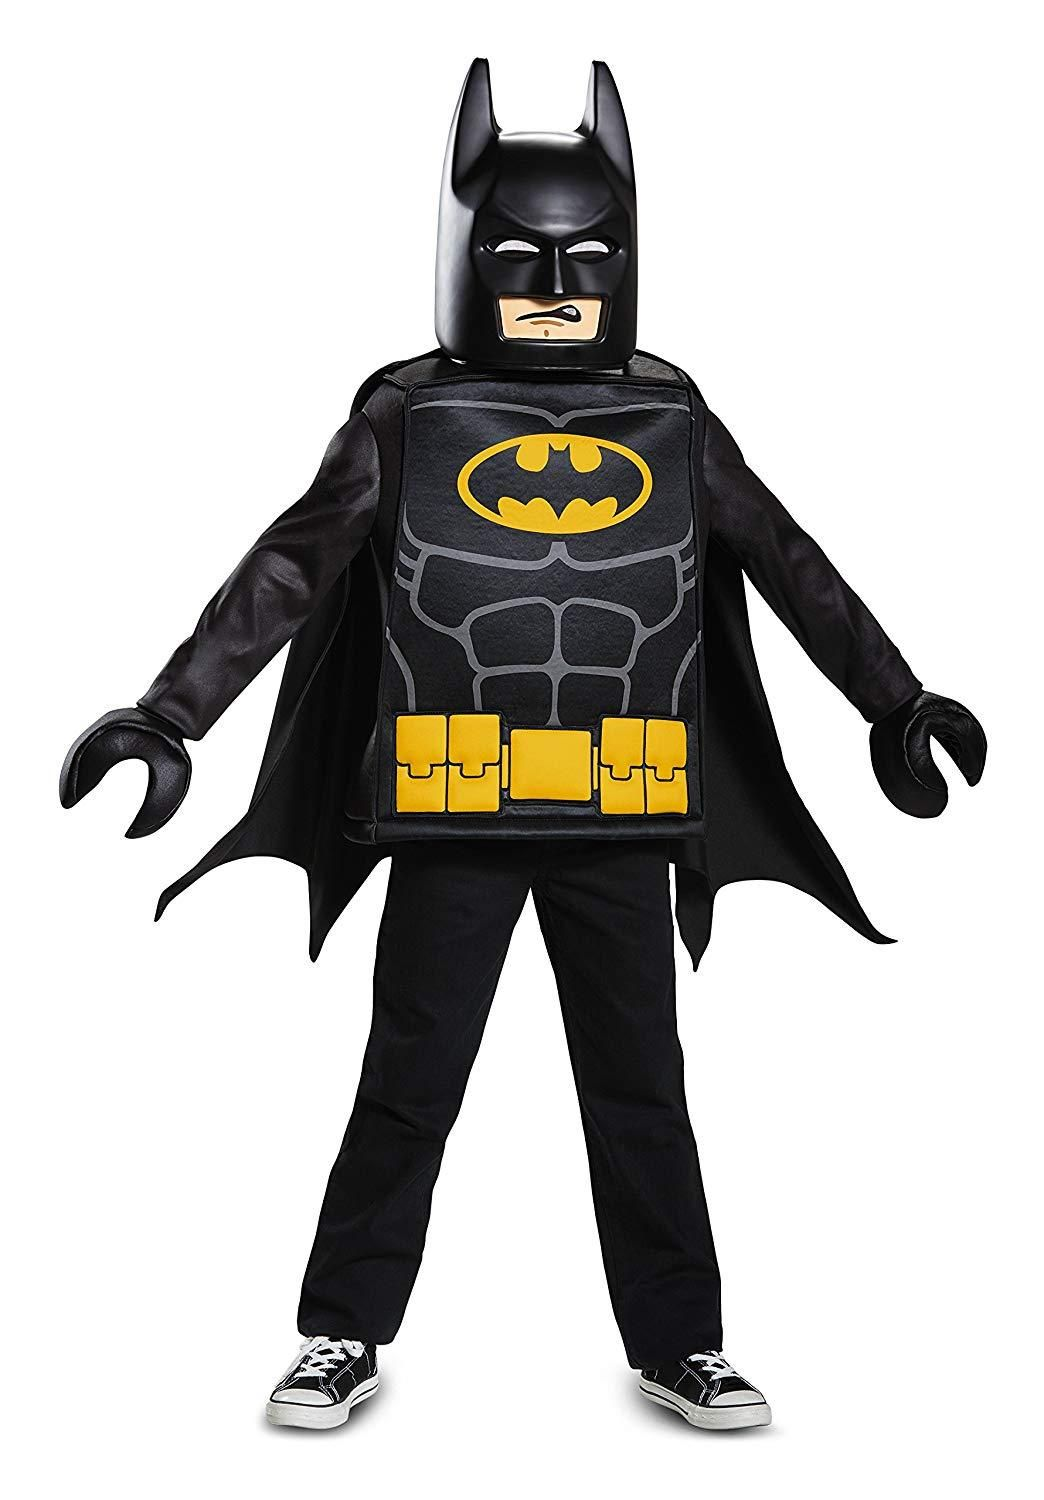 Lego Batman Costume for Boys (avec images)